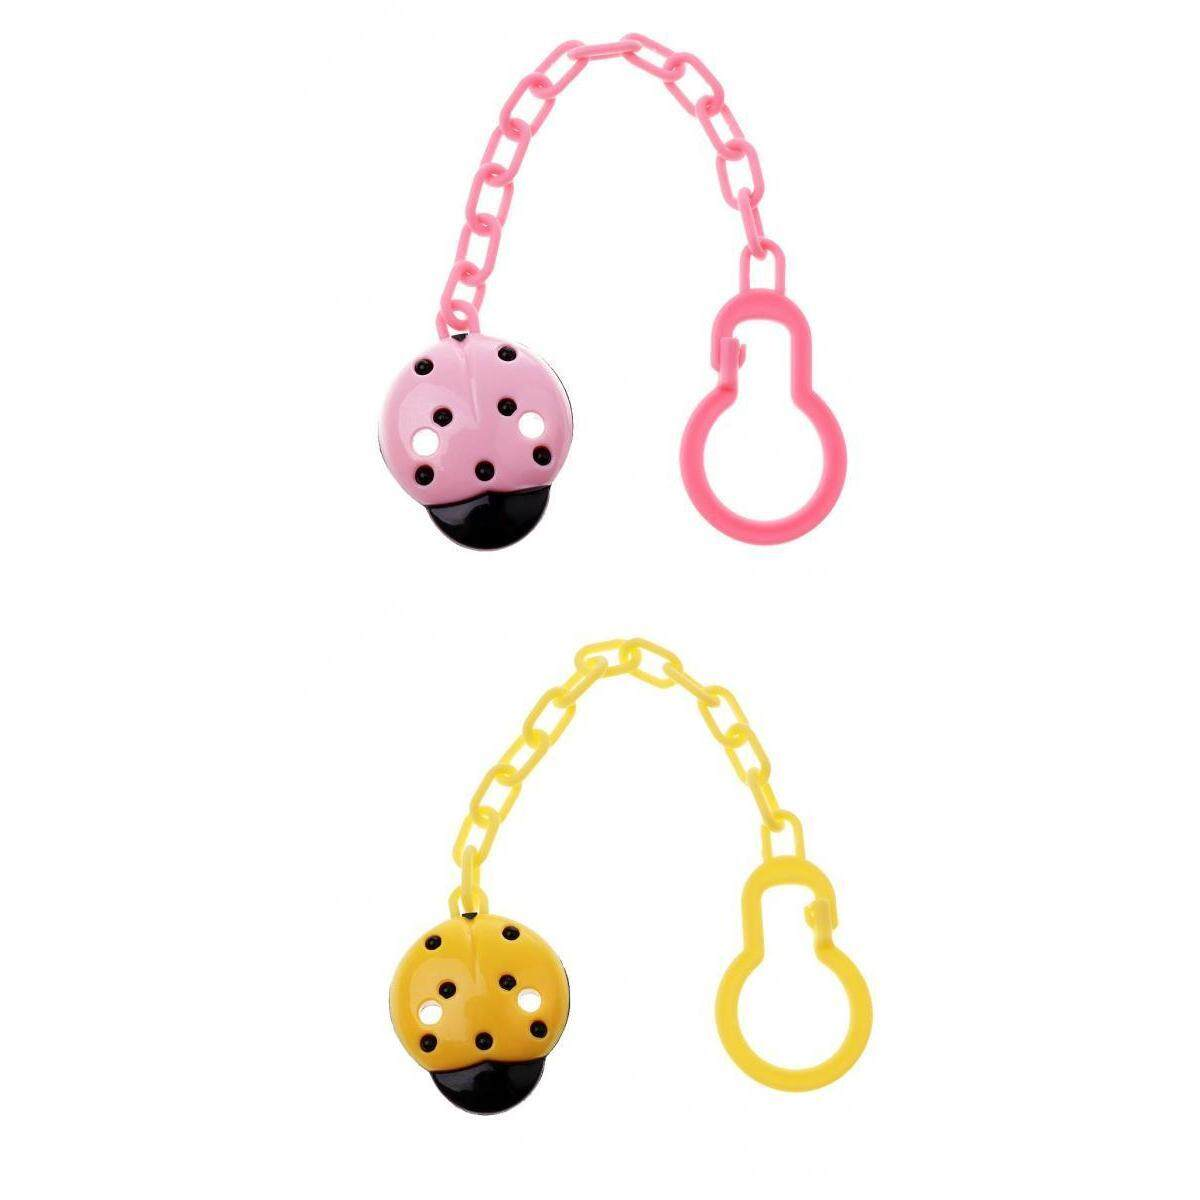 Magideal Baby Pacifier Holder Clips Chain Infant Dummy Teether Straps 2pcs By Magideal.